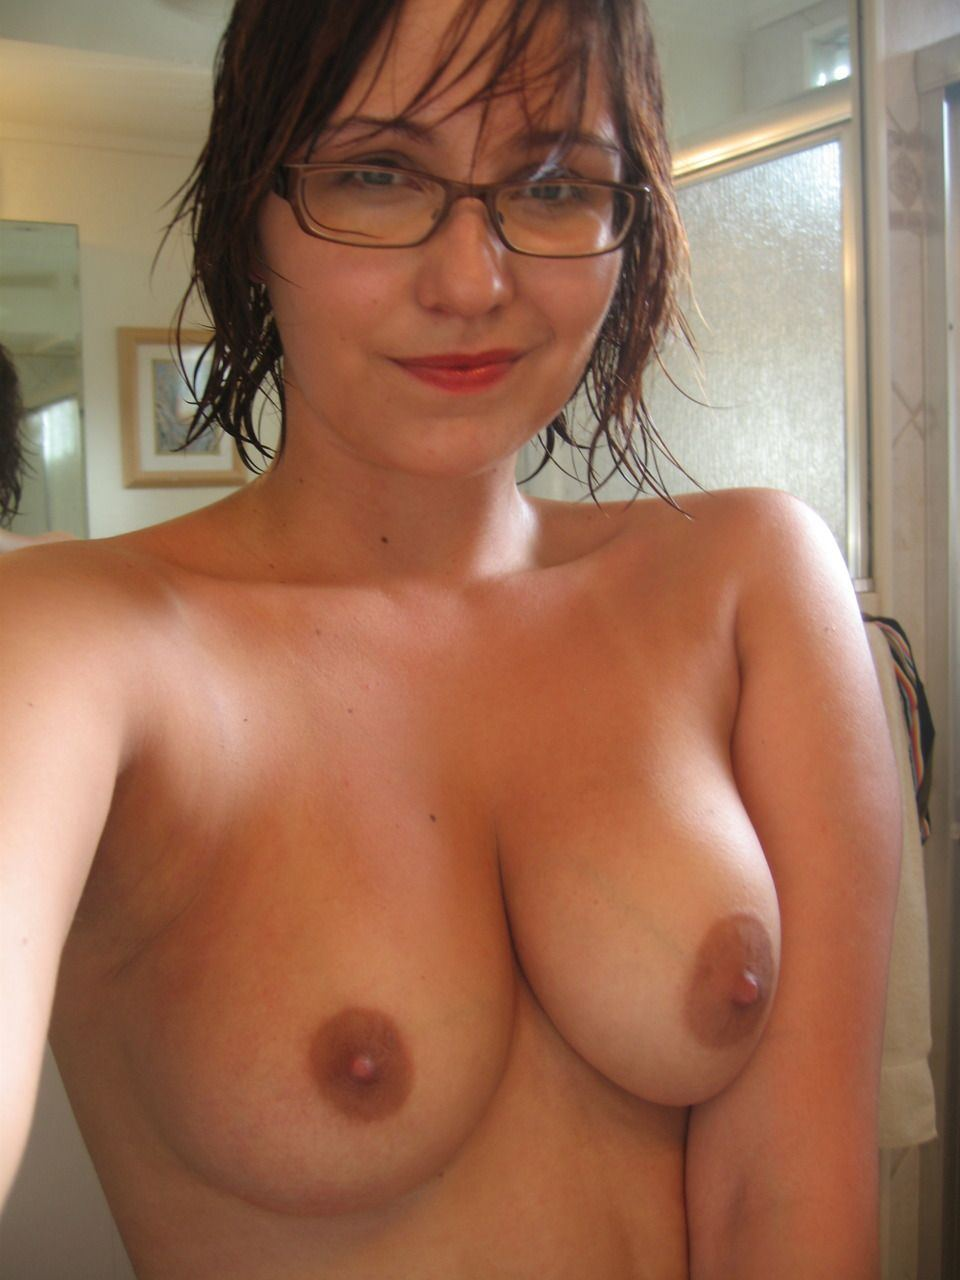 Nerd Boobs Porn skinny naked nerd girls . adult videos. comments: 1